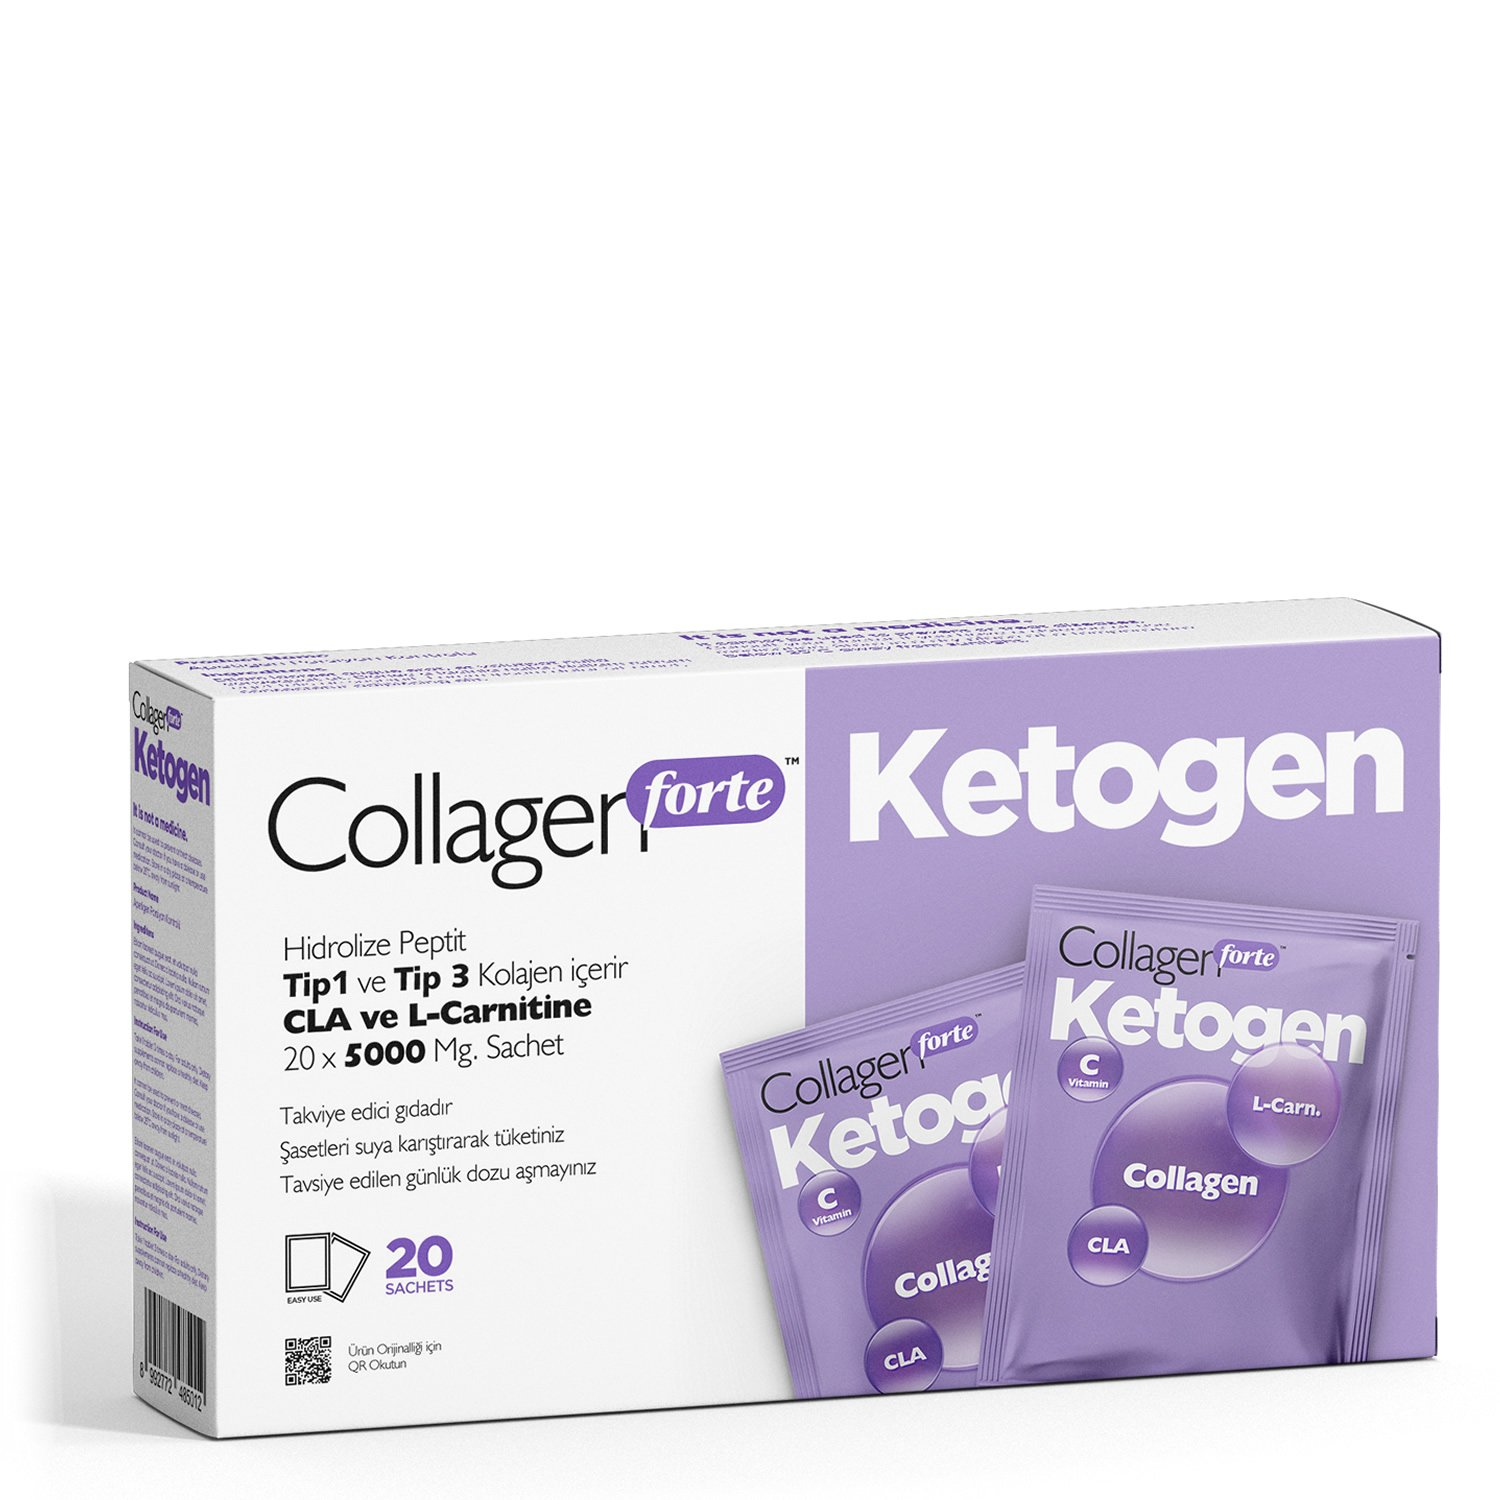 Diet, Helping to Weight Loss, Suppressing Appetite and Accelerating Metabolism Collagen Forte Ketogen, 20 Pieces-5000 Mg